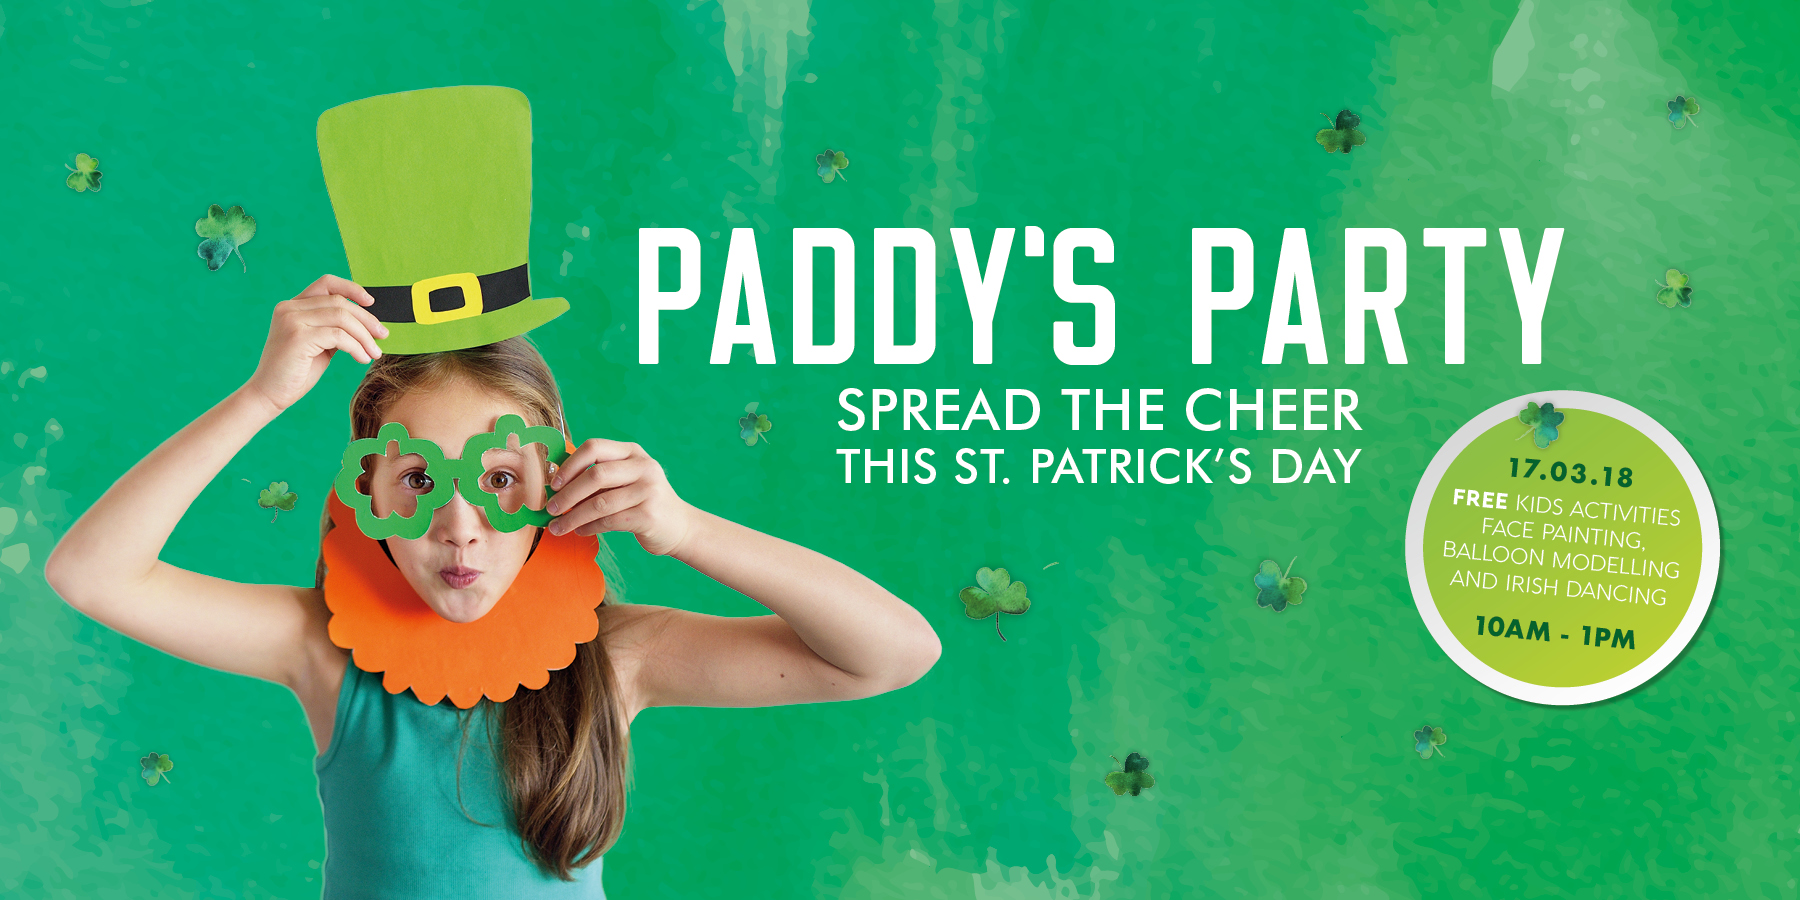 6106 Citywest St Patrick's Day Web Banner 1800x900